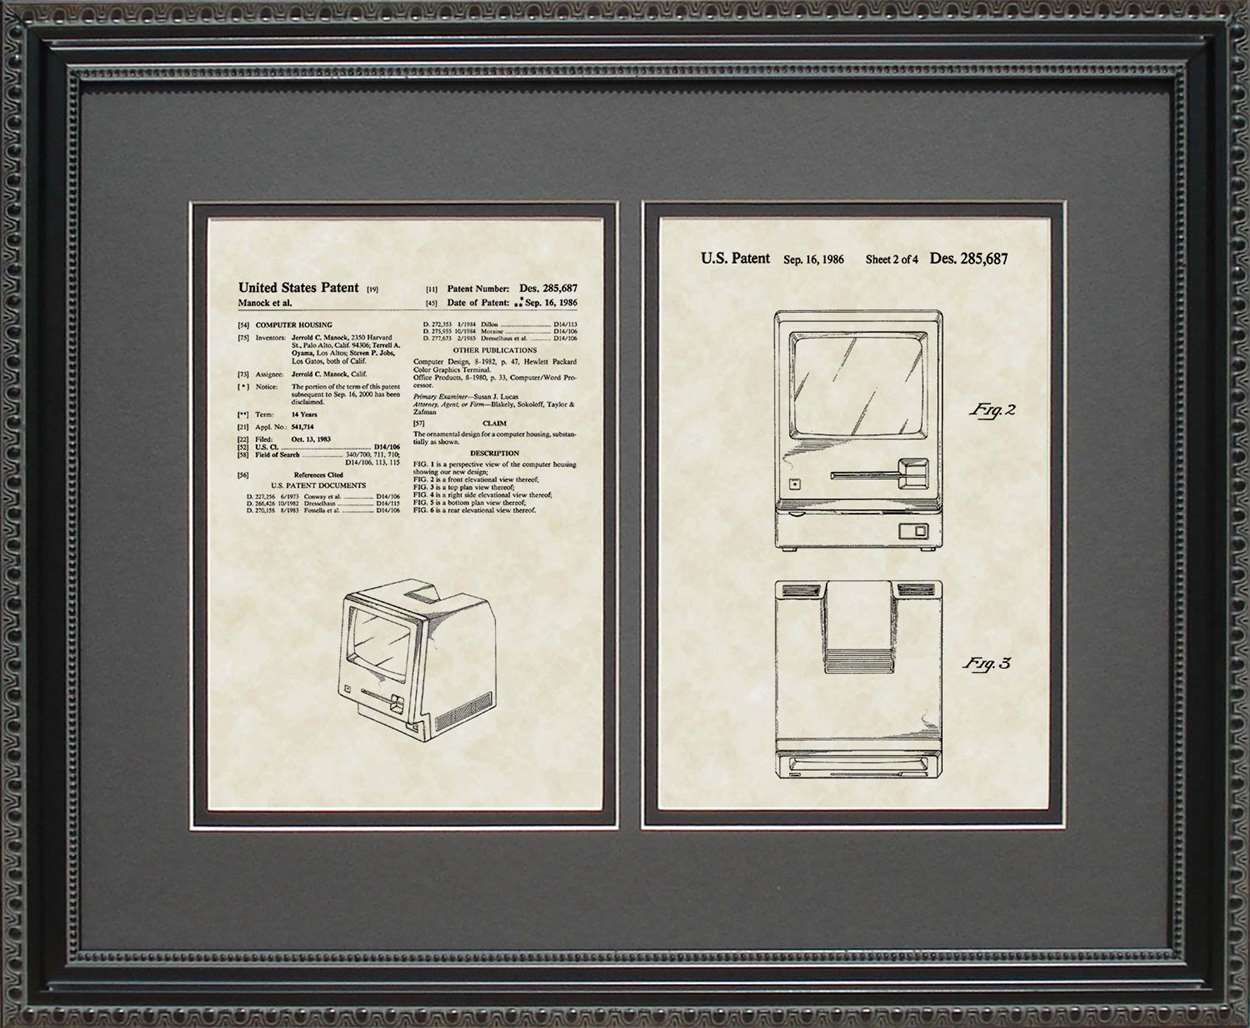 Macintosh Computer Patent, Art & Copy, Manock & Jobs, 1986, 16x20